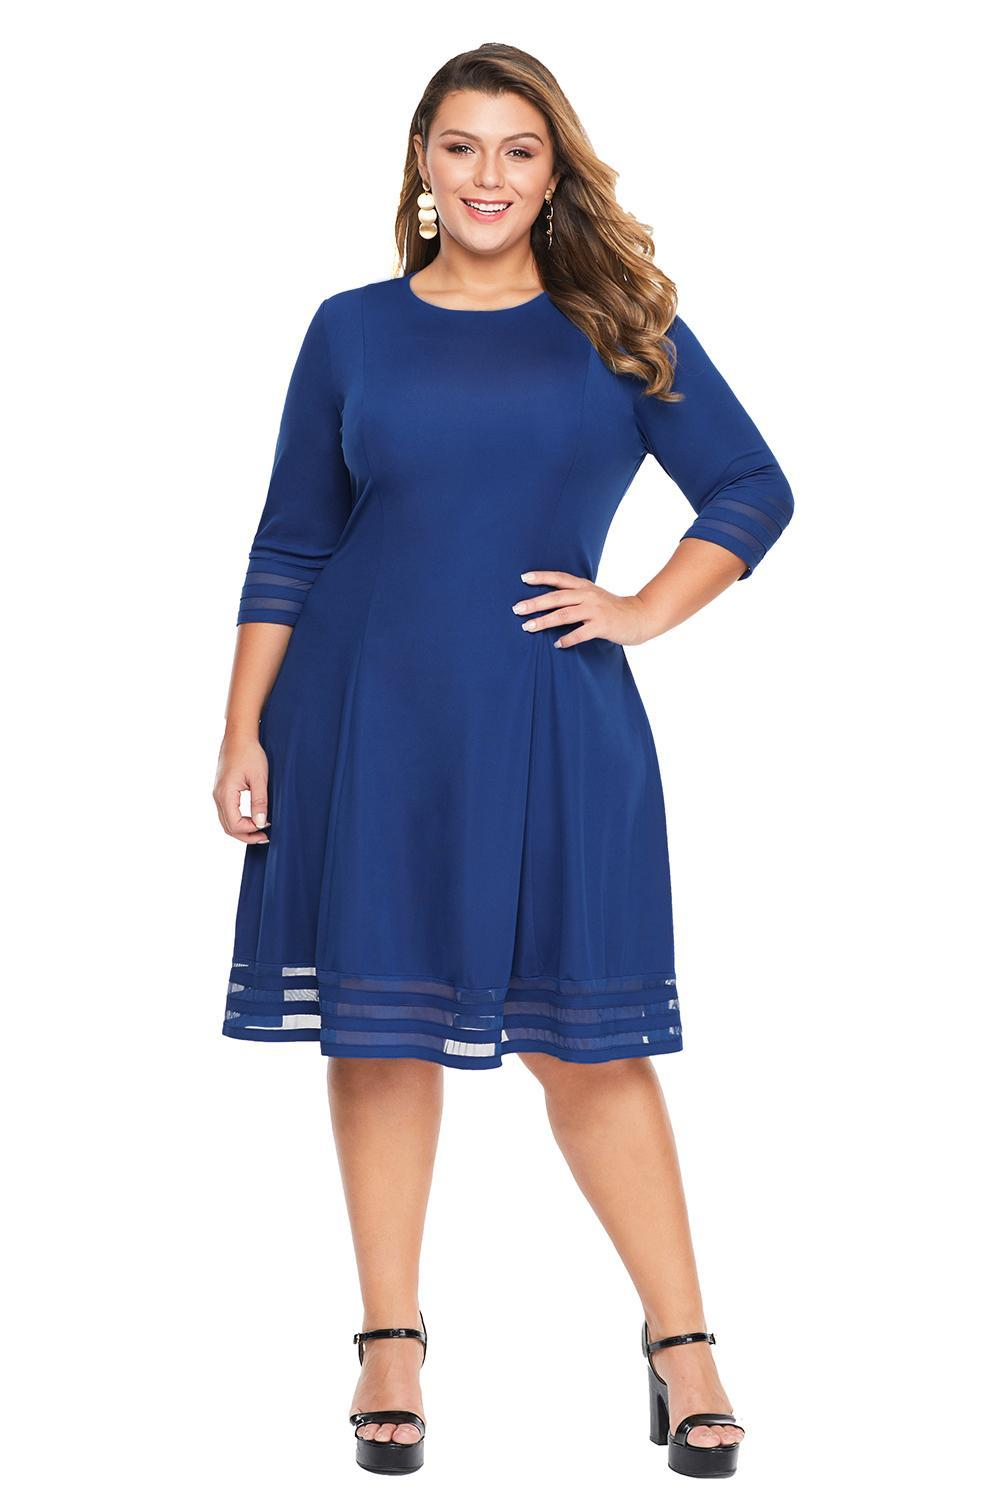 Blue Length Sleeve Gauze Patchwork Flare Plus Size Dress - Winter Haven Co